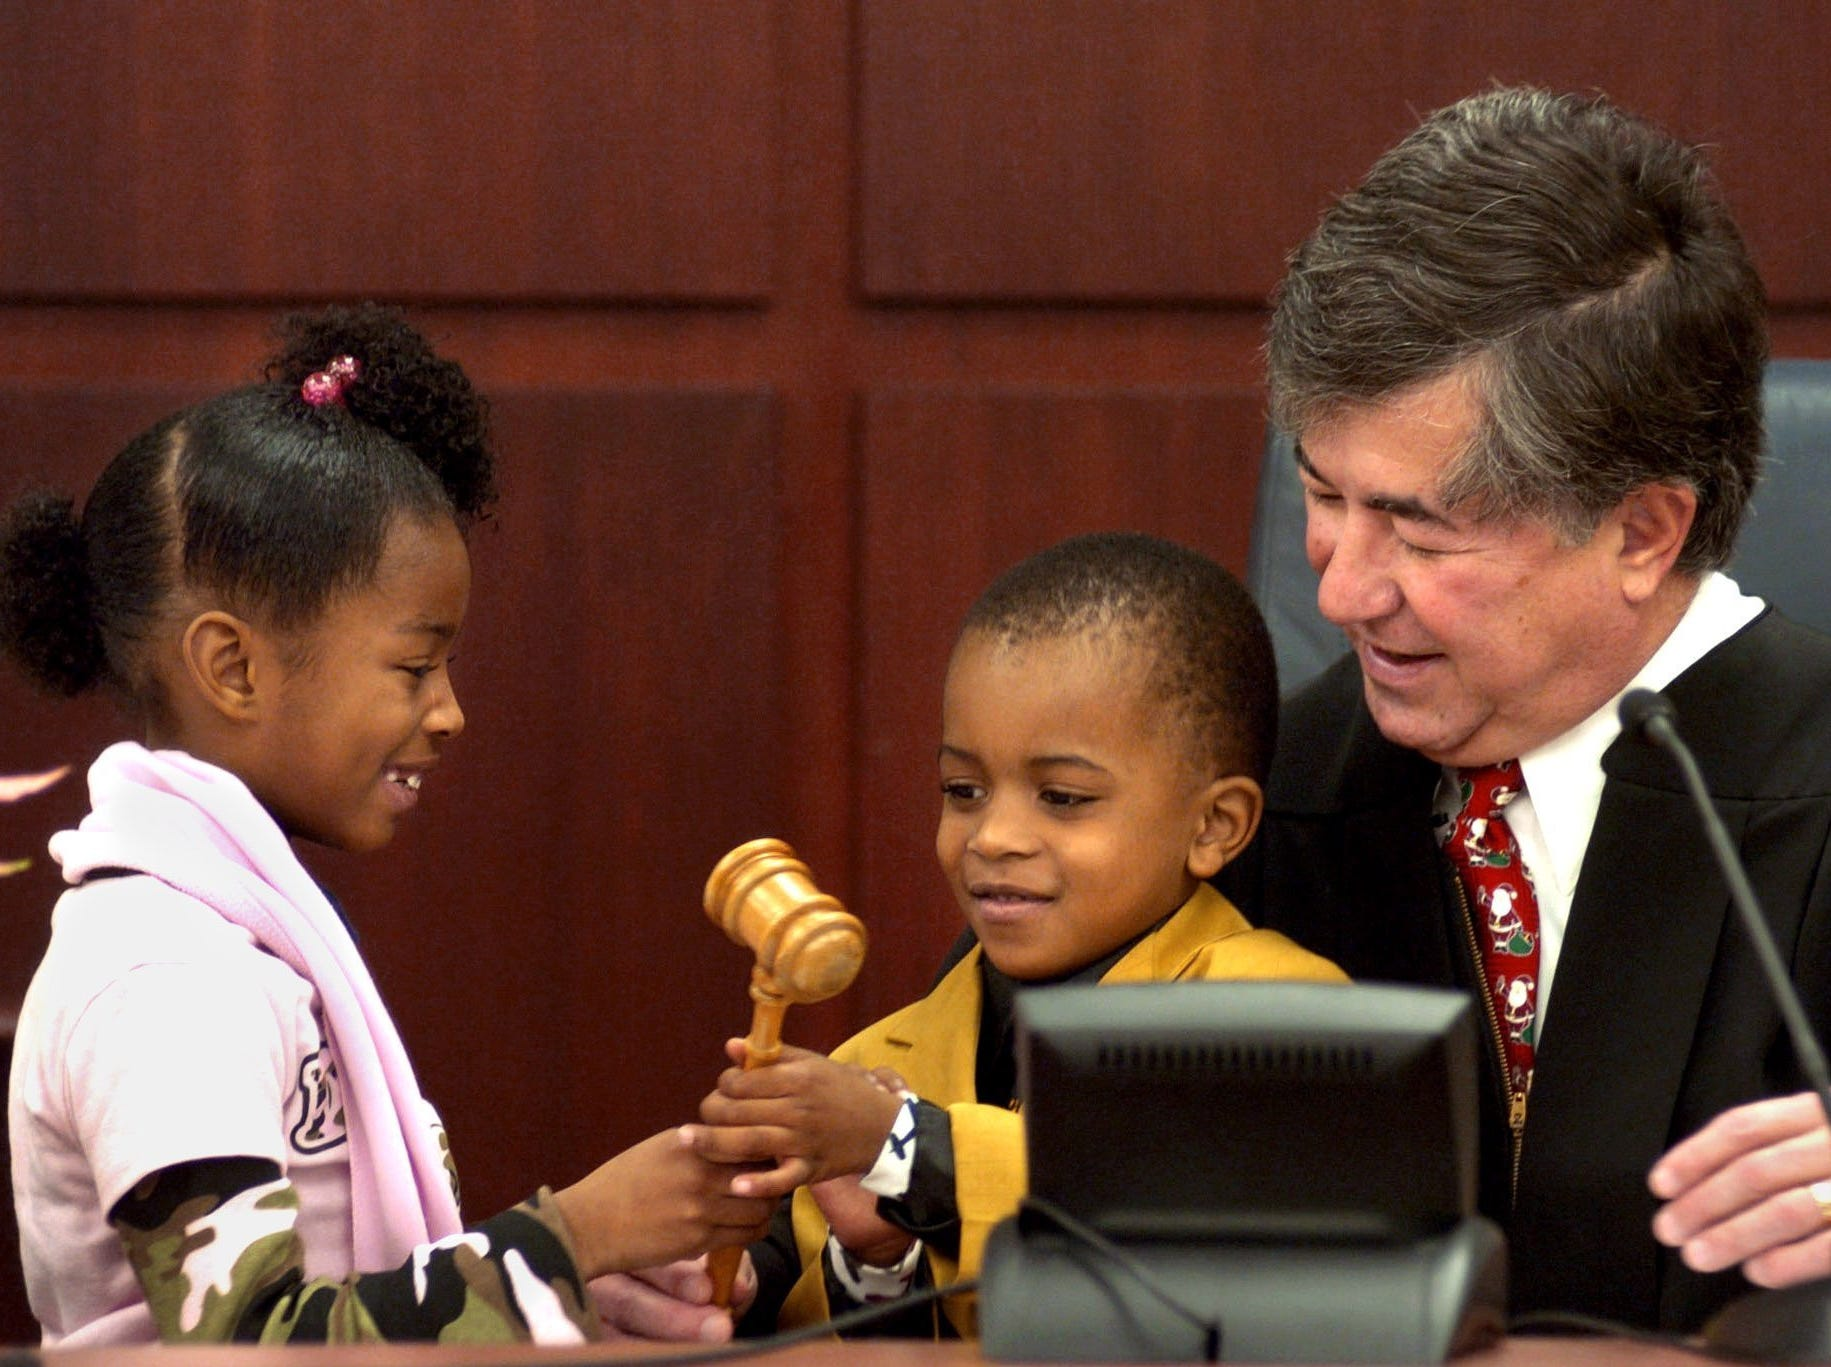 Andrea Verser, left, hands the gavel to her brother Fayshun, 4, after during their adoption proceedings in Judge George Economy's courtroom, Dec. 22, 2004.